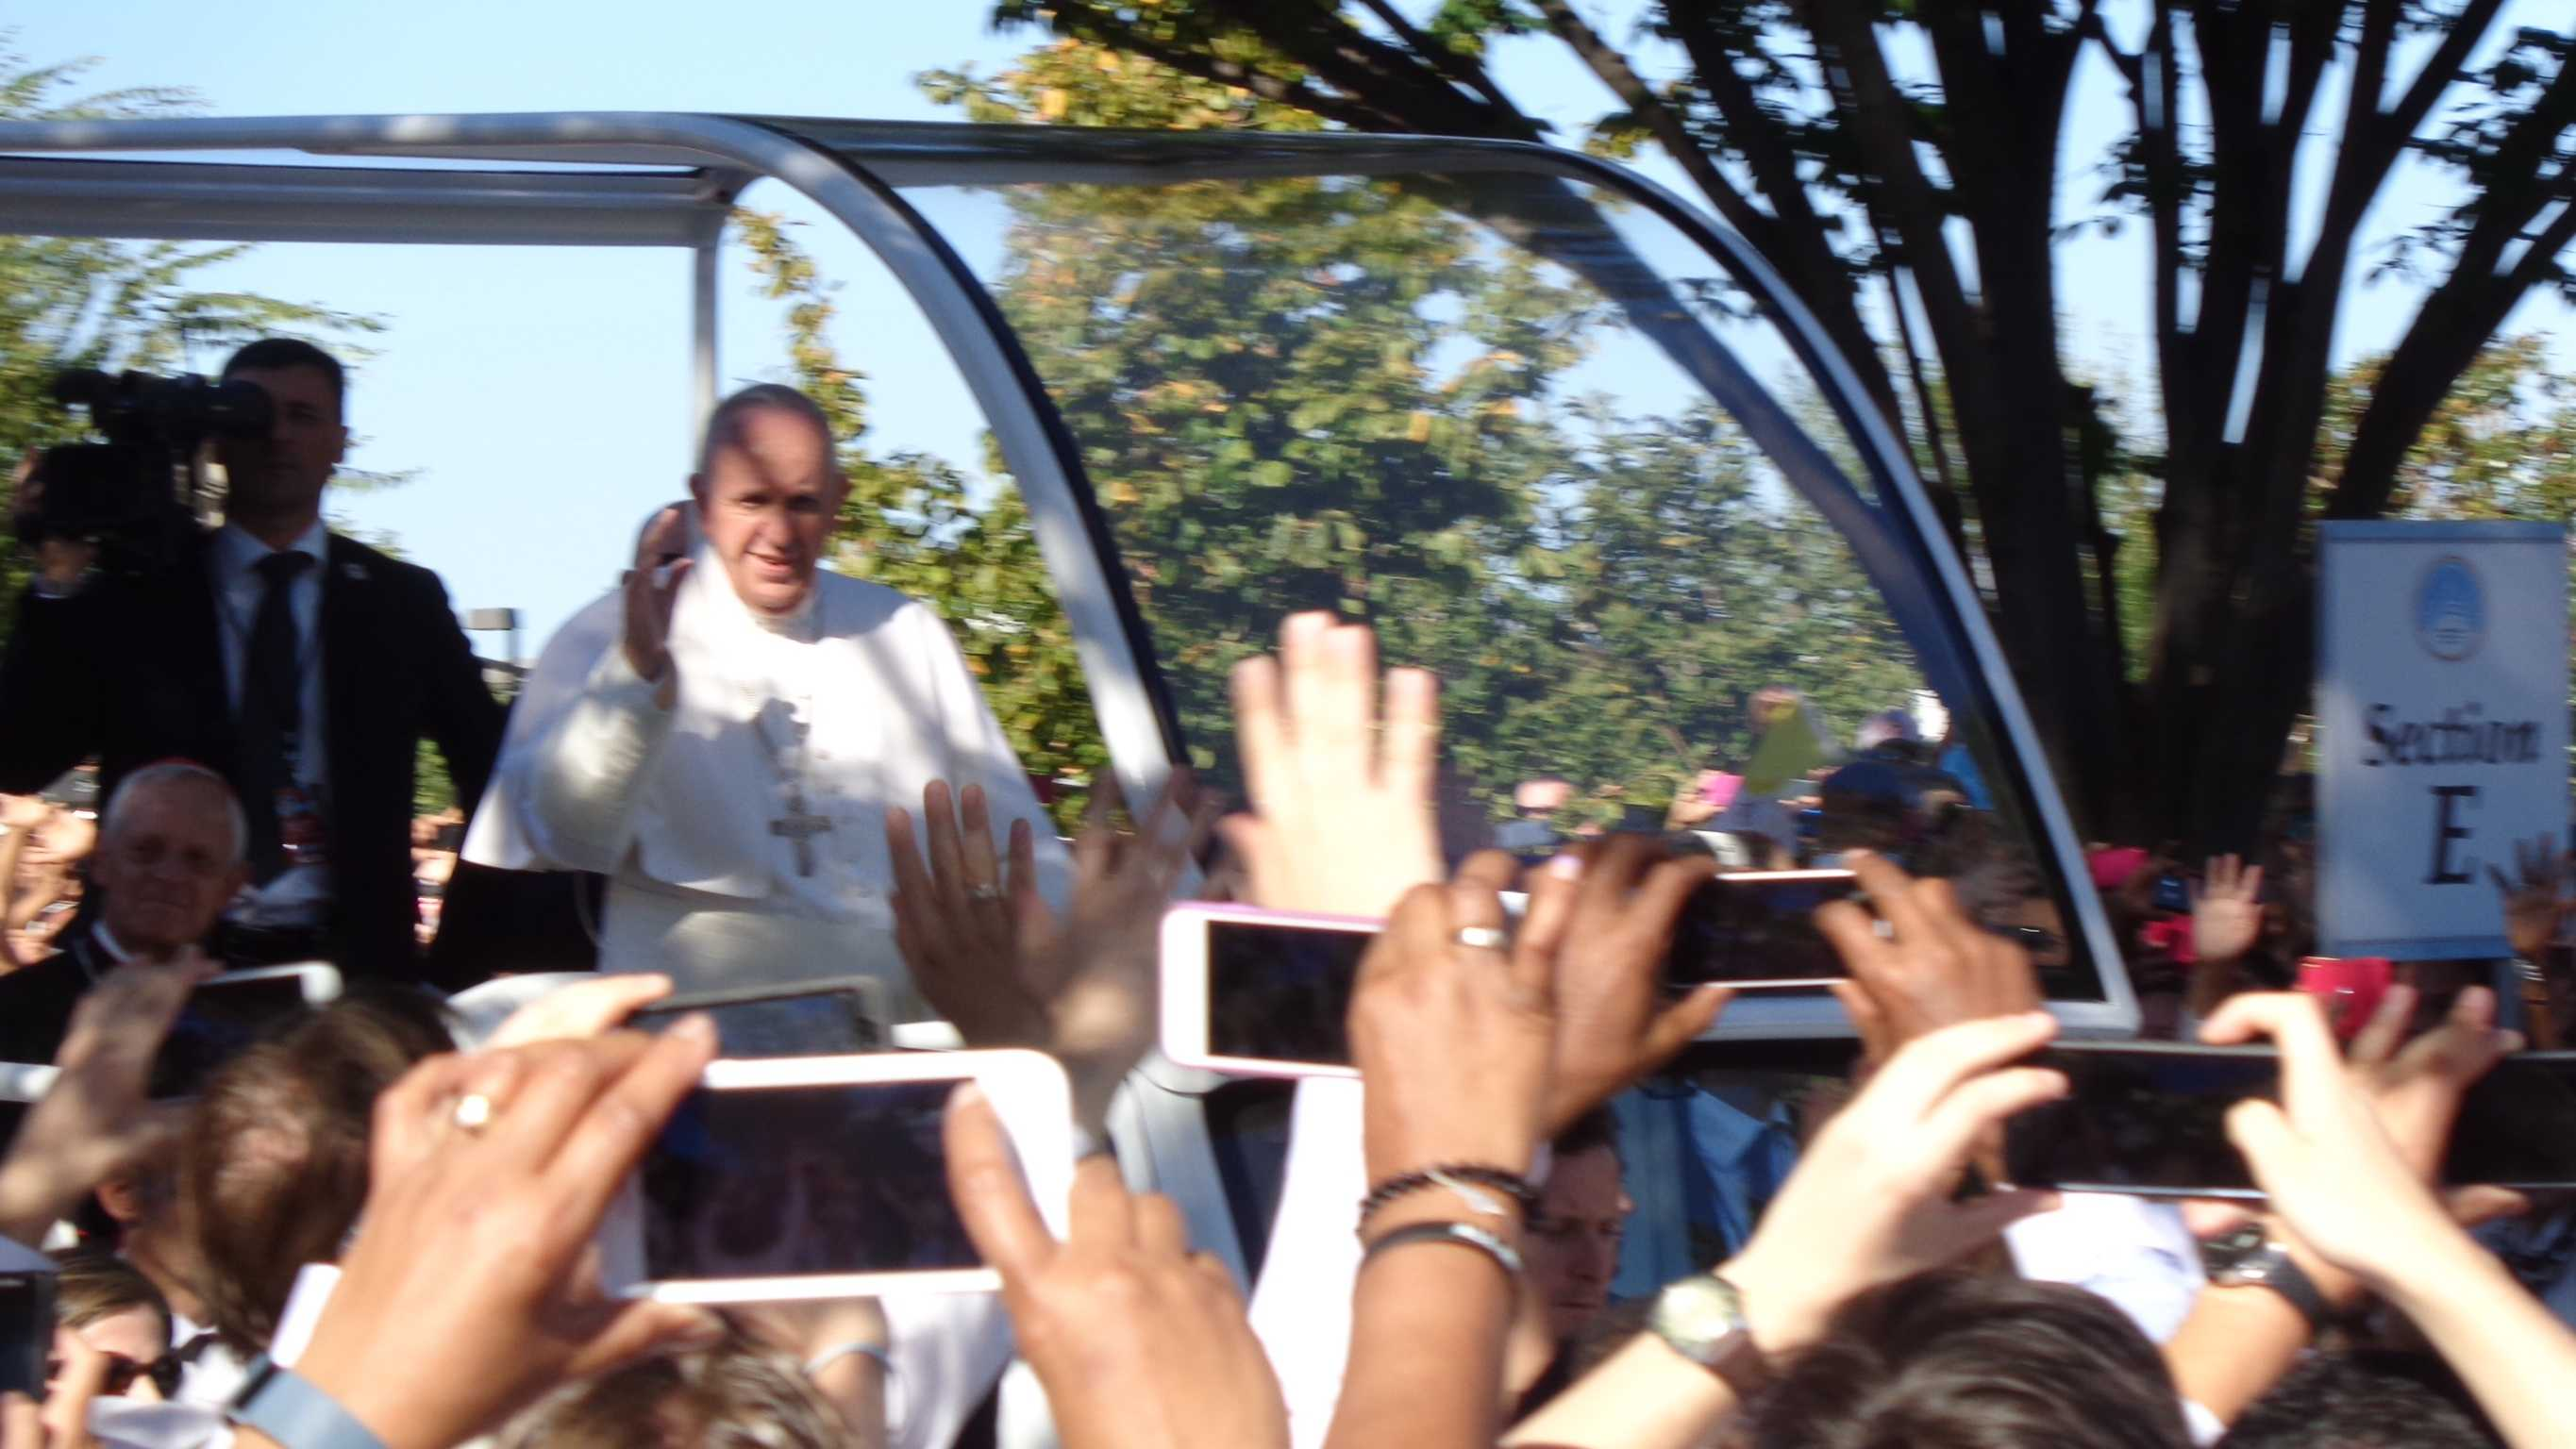 Pope Francis DC Visit Photo Gallery (9/23/15)